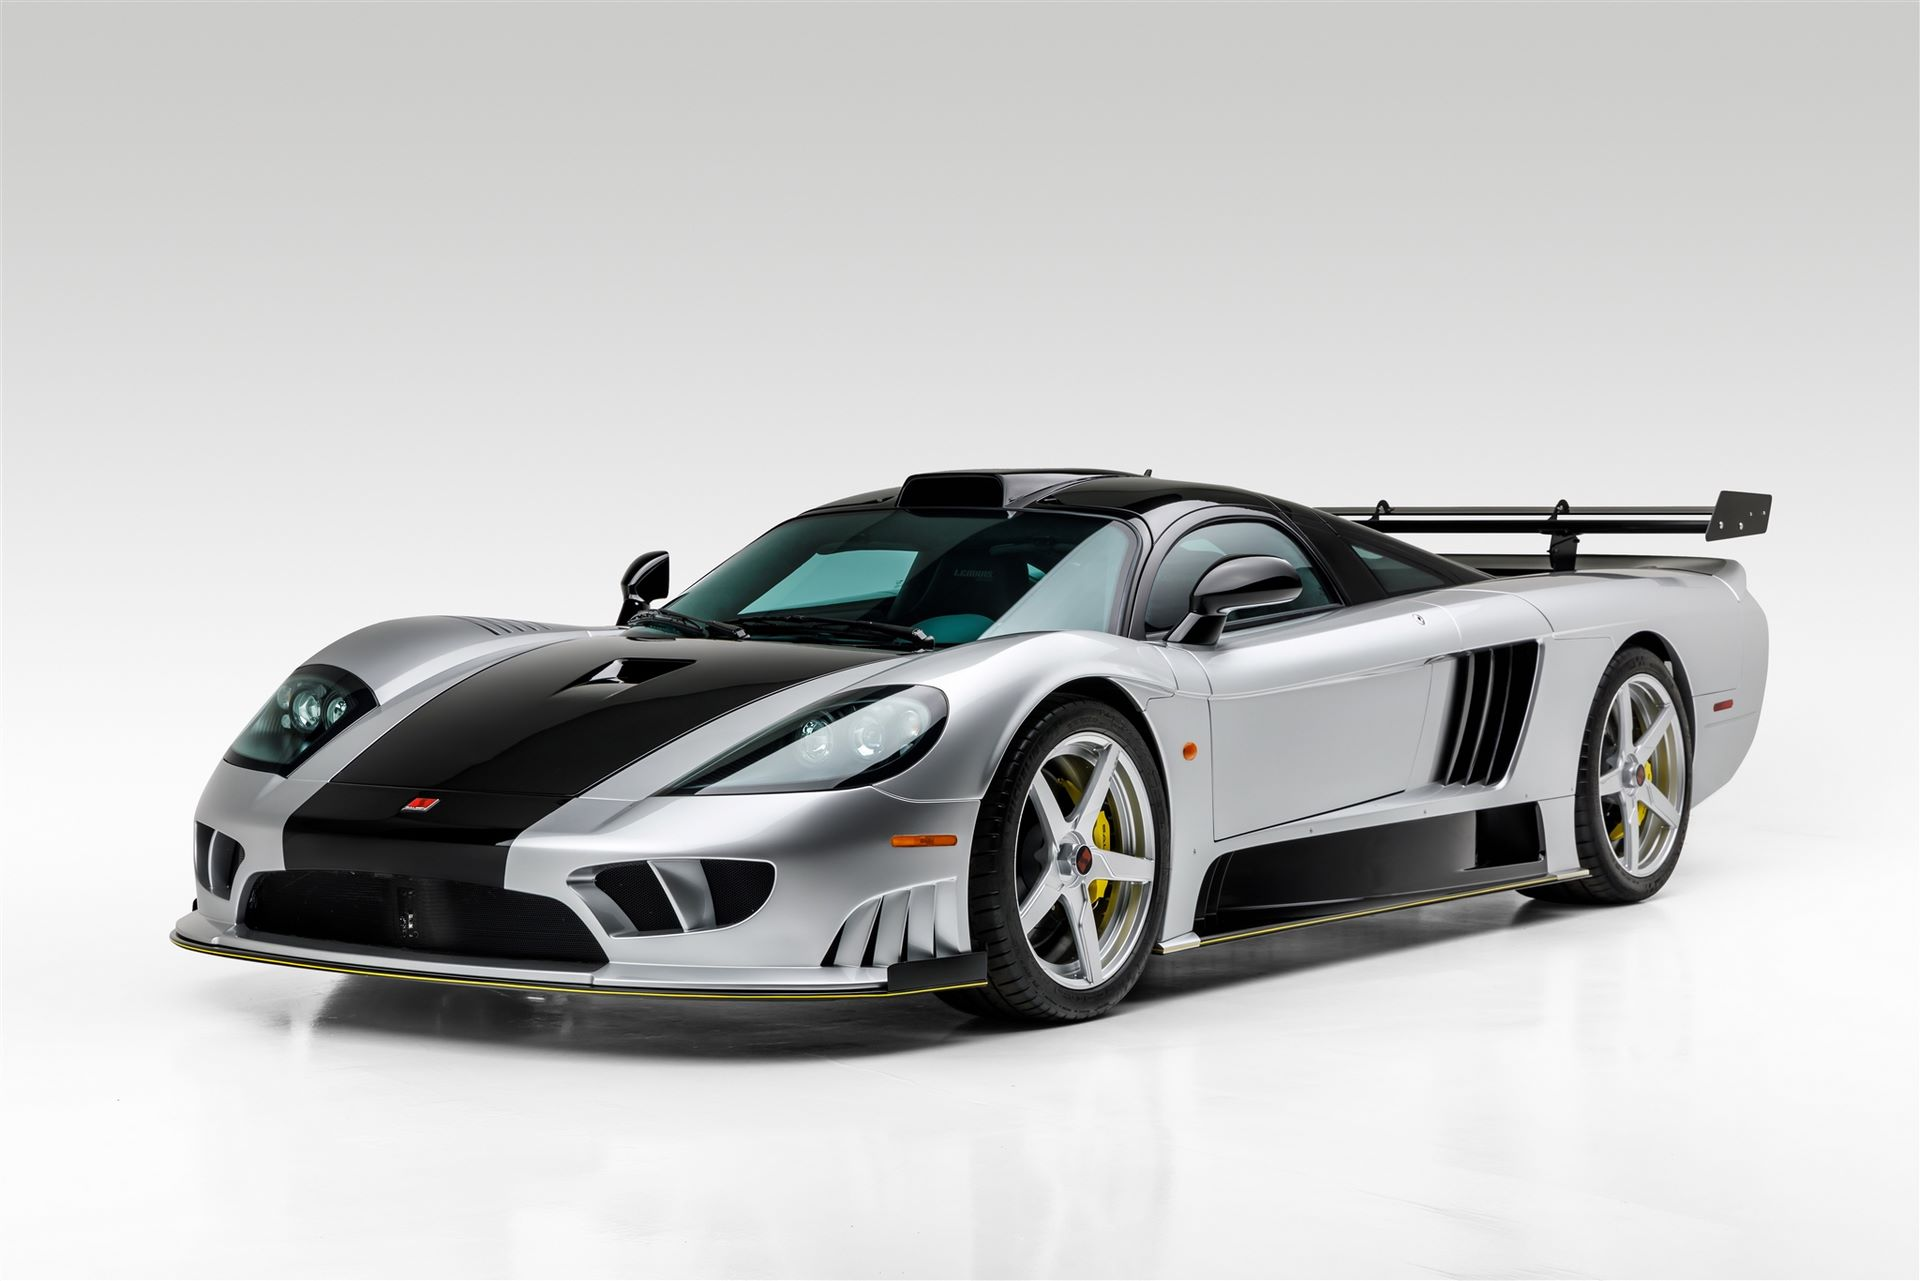 Saleen-S7-LM-auction-1